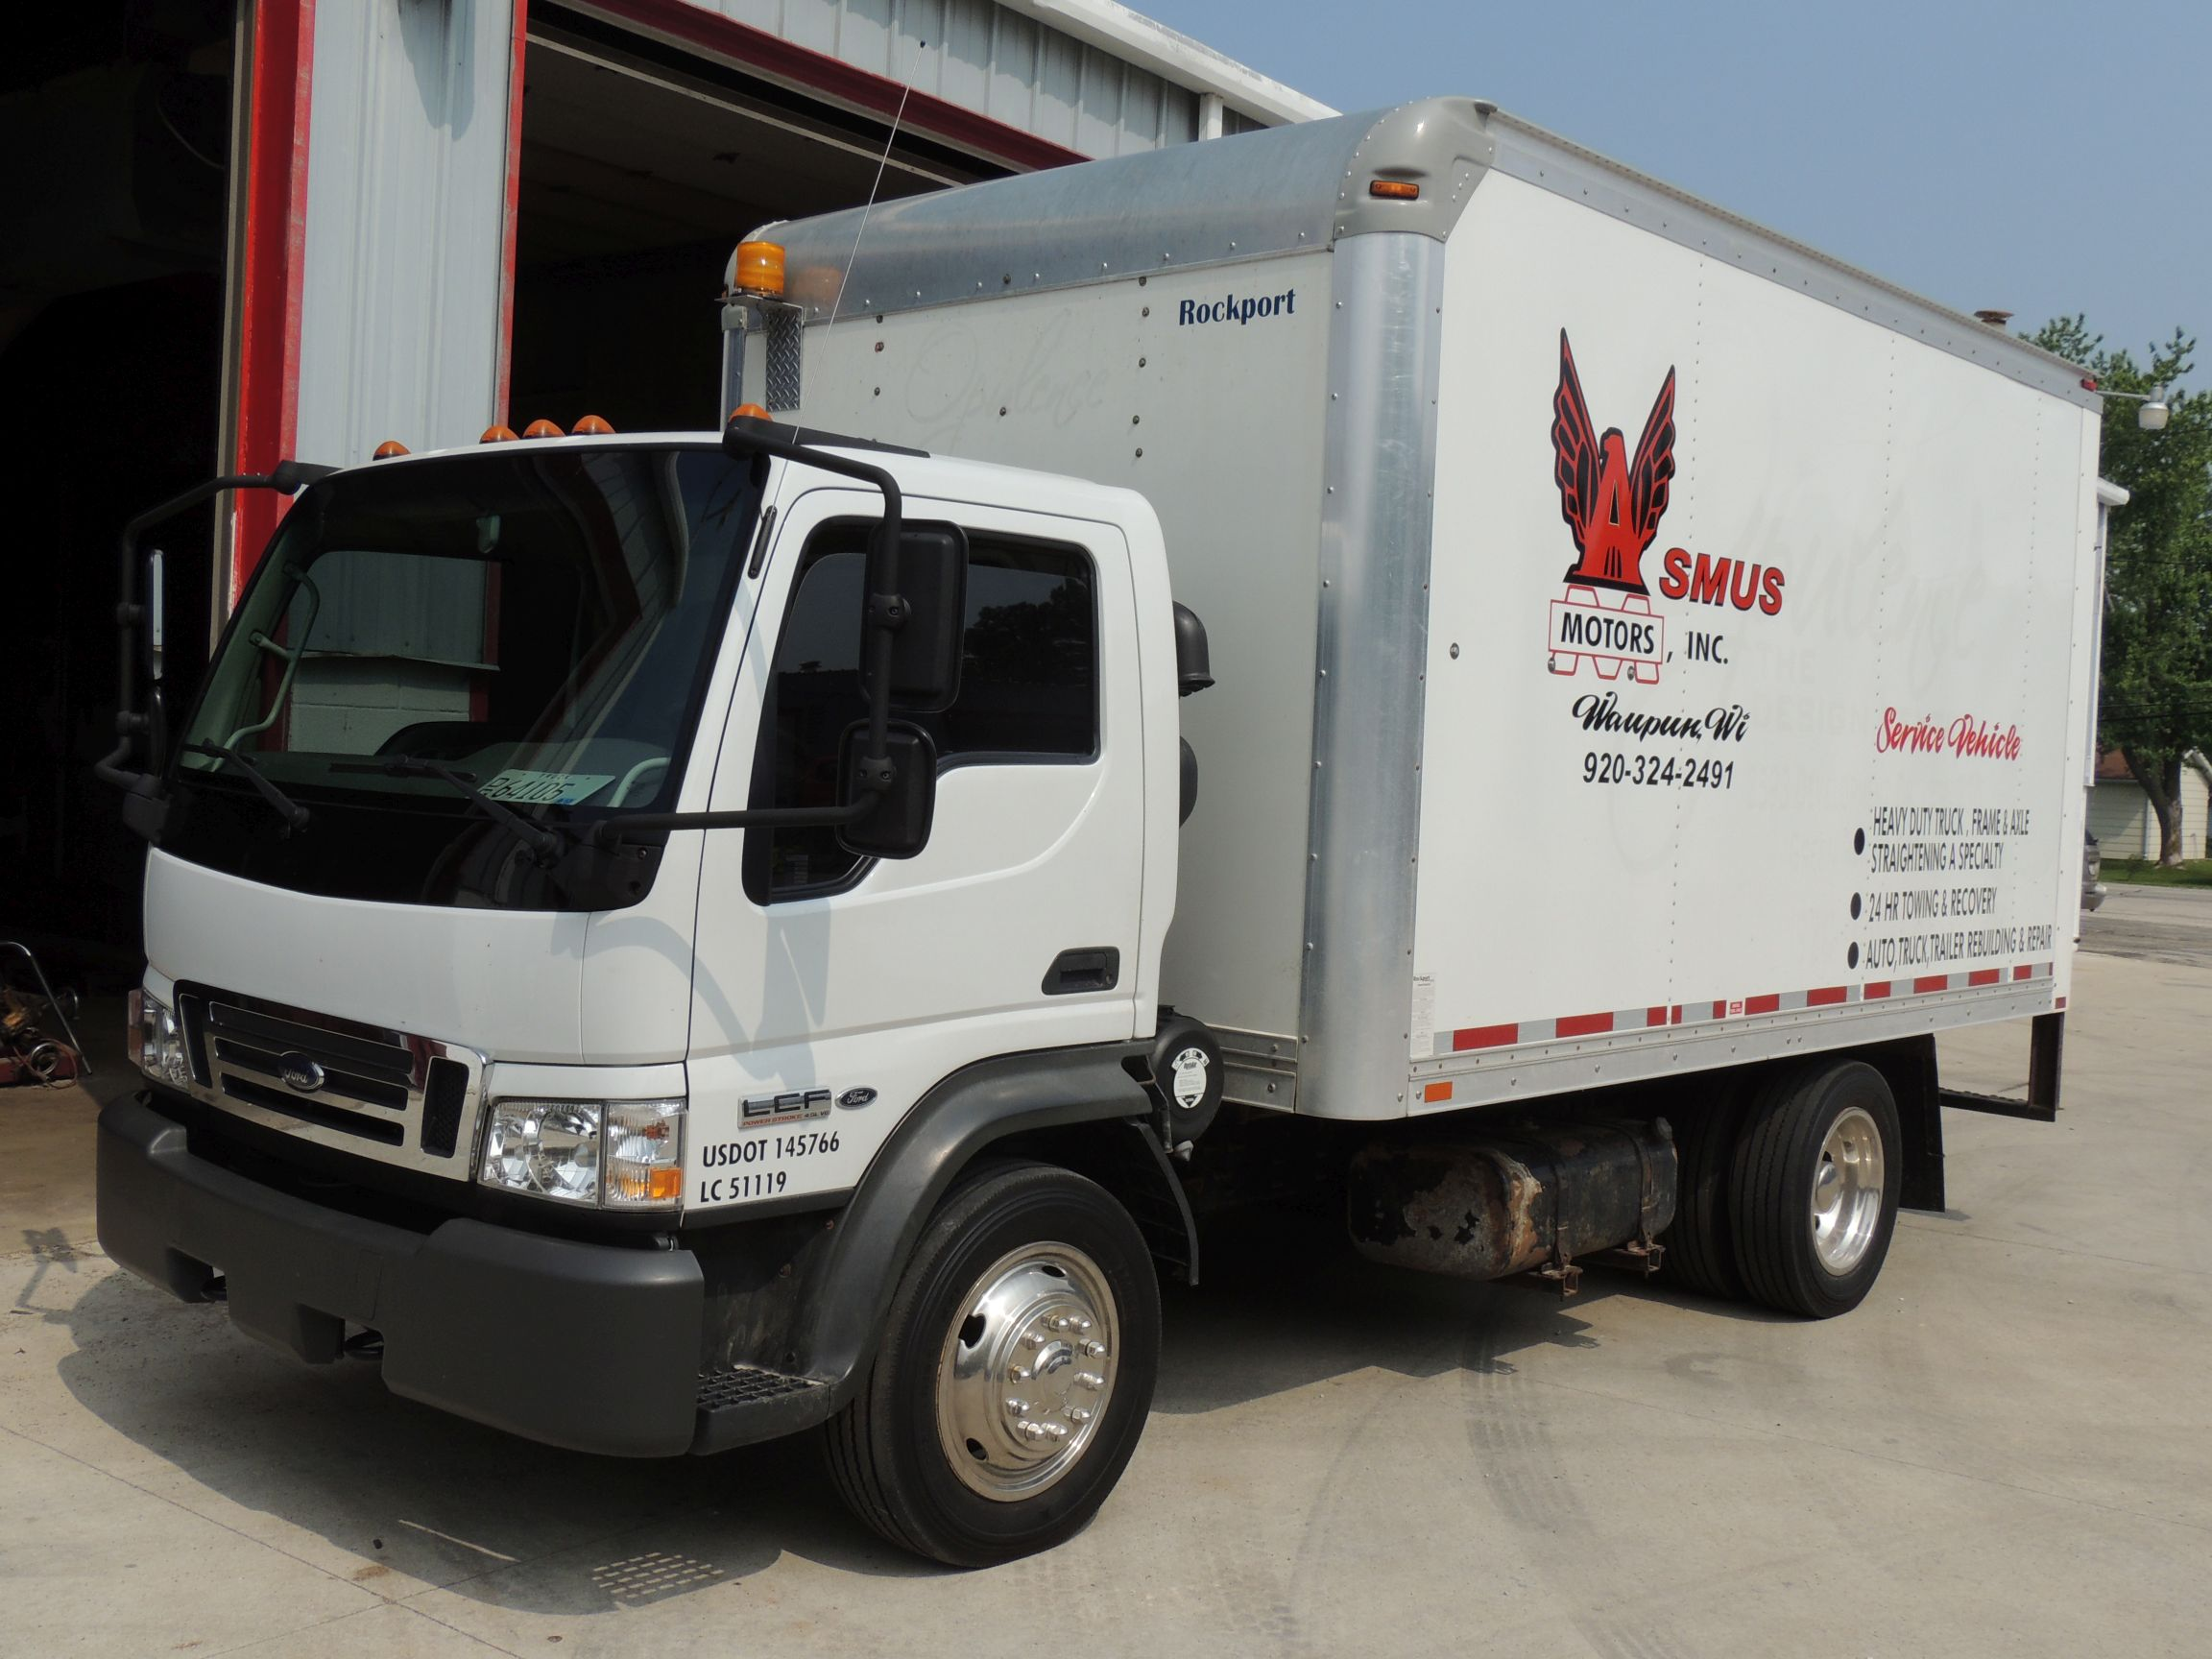 Ford Lcf Box Truck Is Your Car 2006 Fuse Location 2007 Source Service Trk Van Asmus Motors